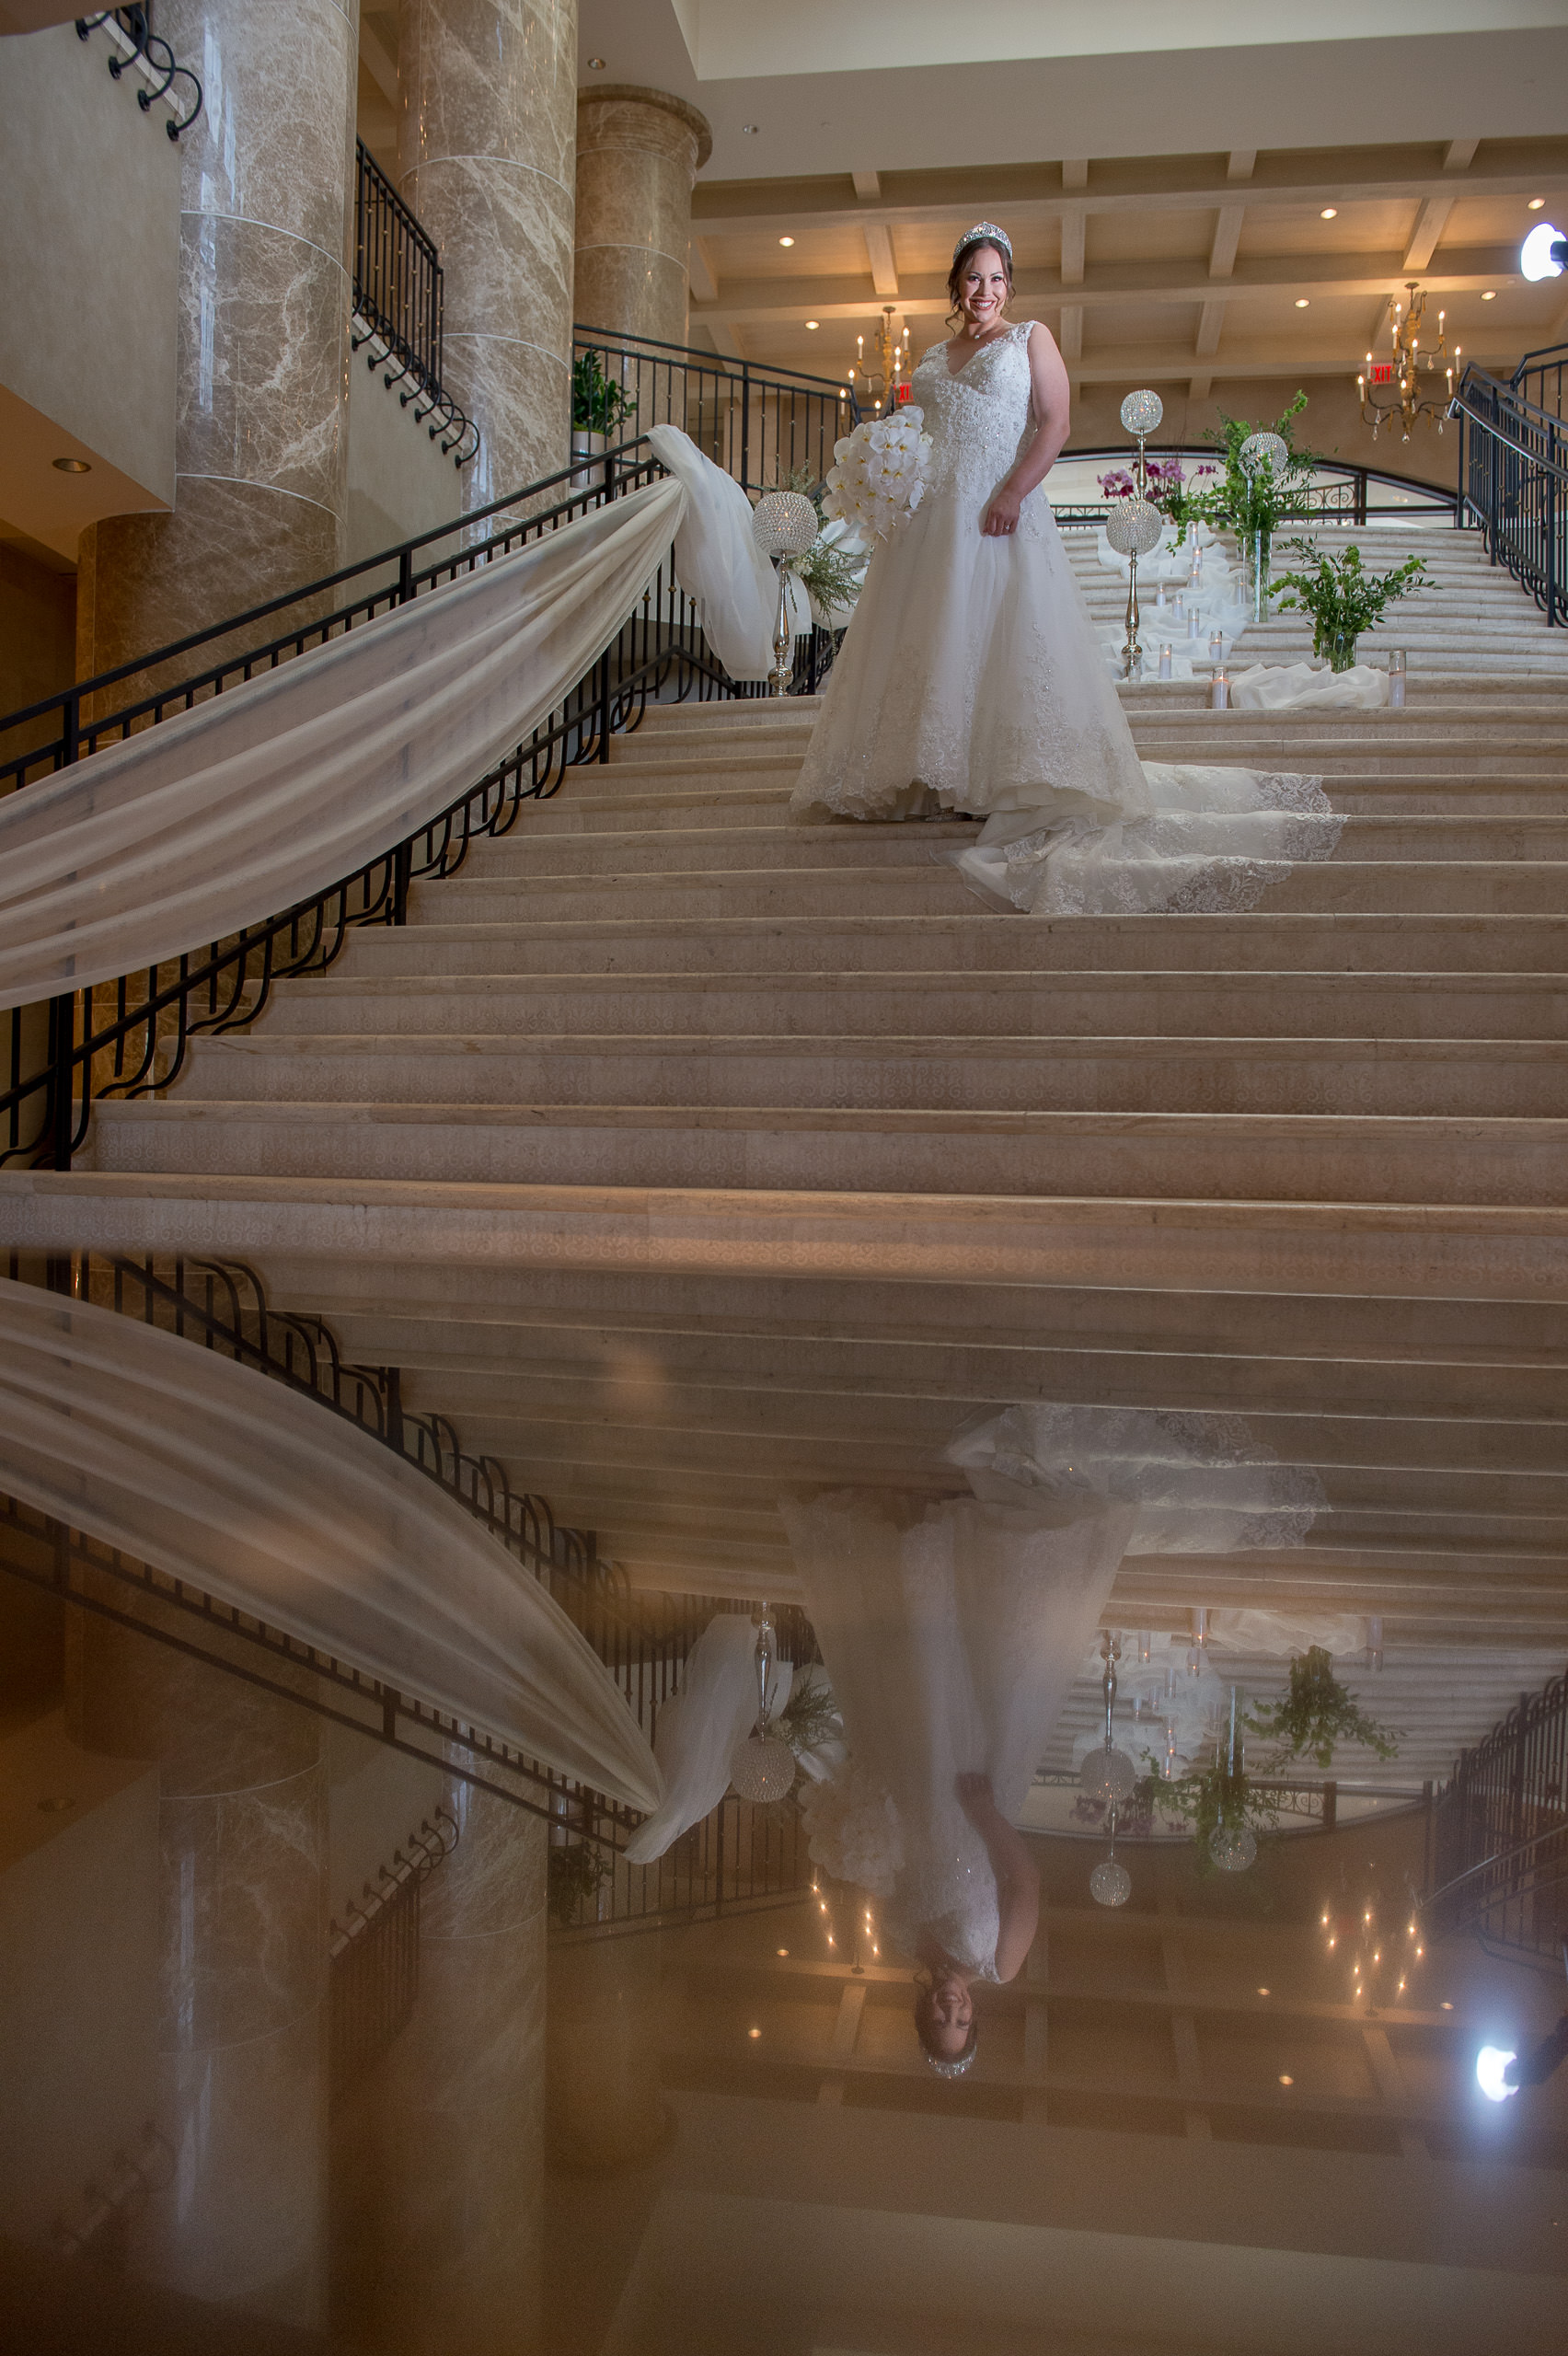 eilan-hotel-wedding-resort-scenic-hill-country-weddings-san-antonio-wedding-photographers-_4S28301